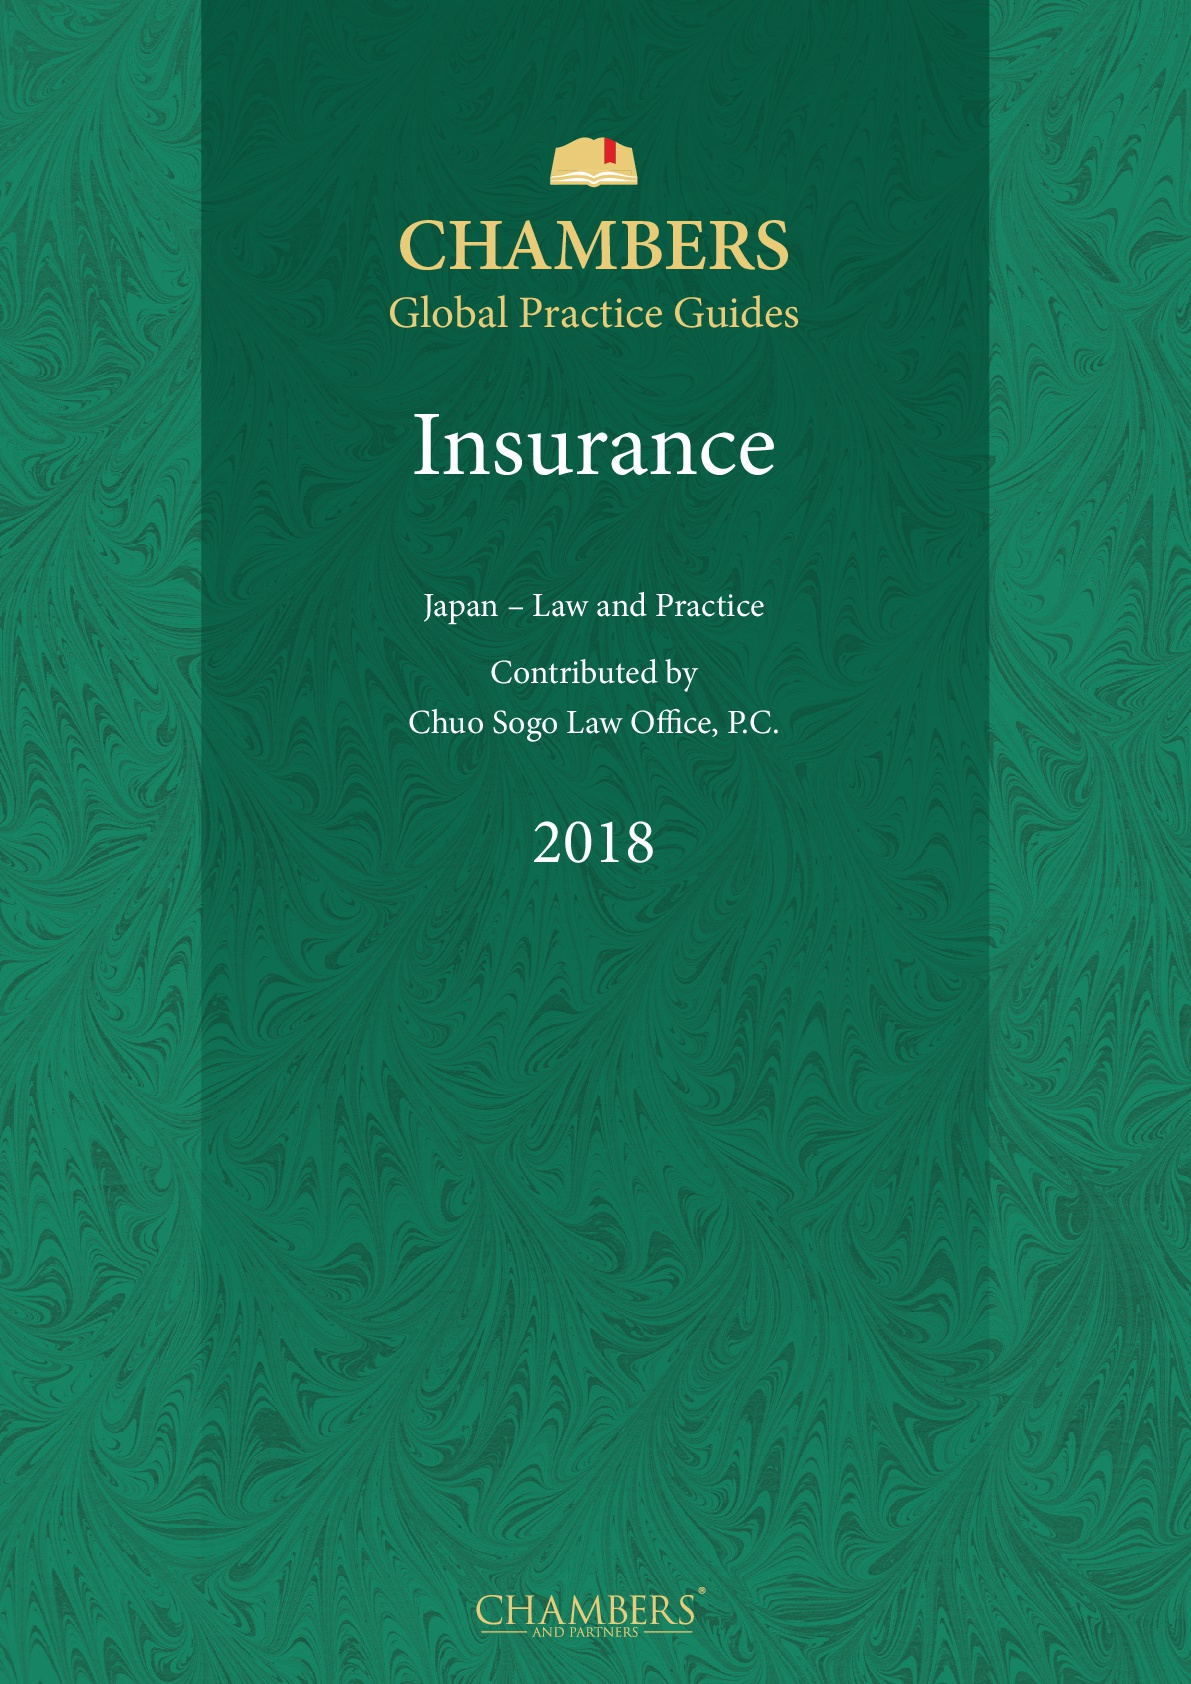 Chambers Global Practice Guides: Insurance – Japan – Law and Practice 2018